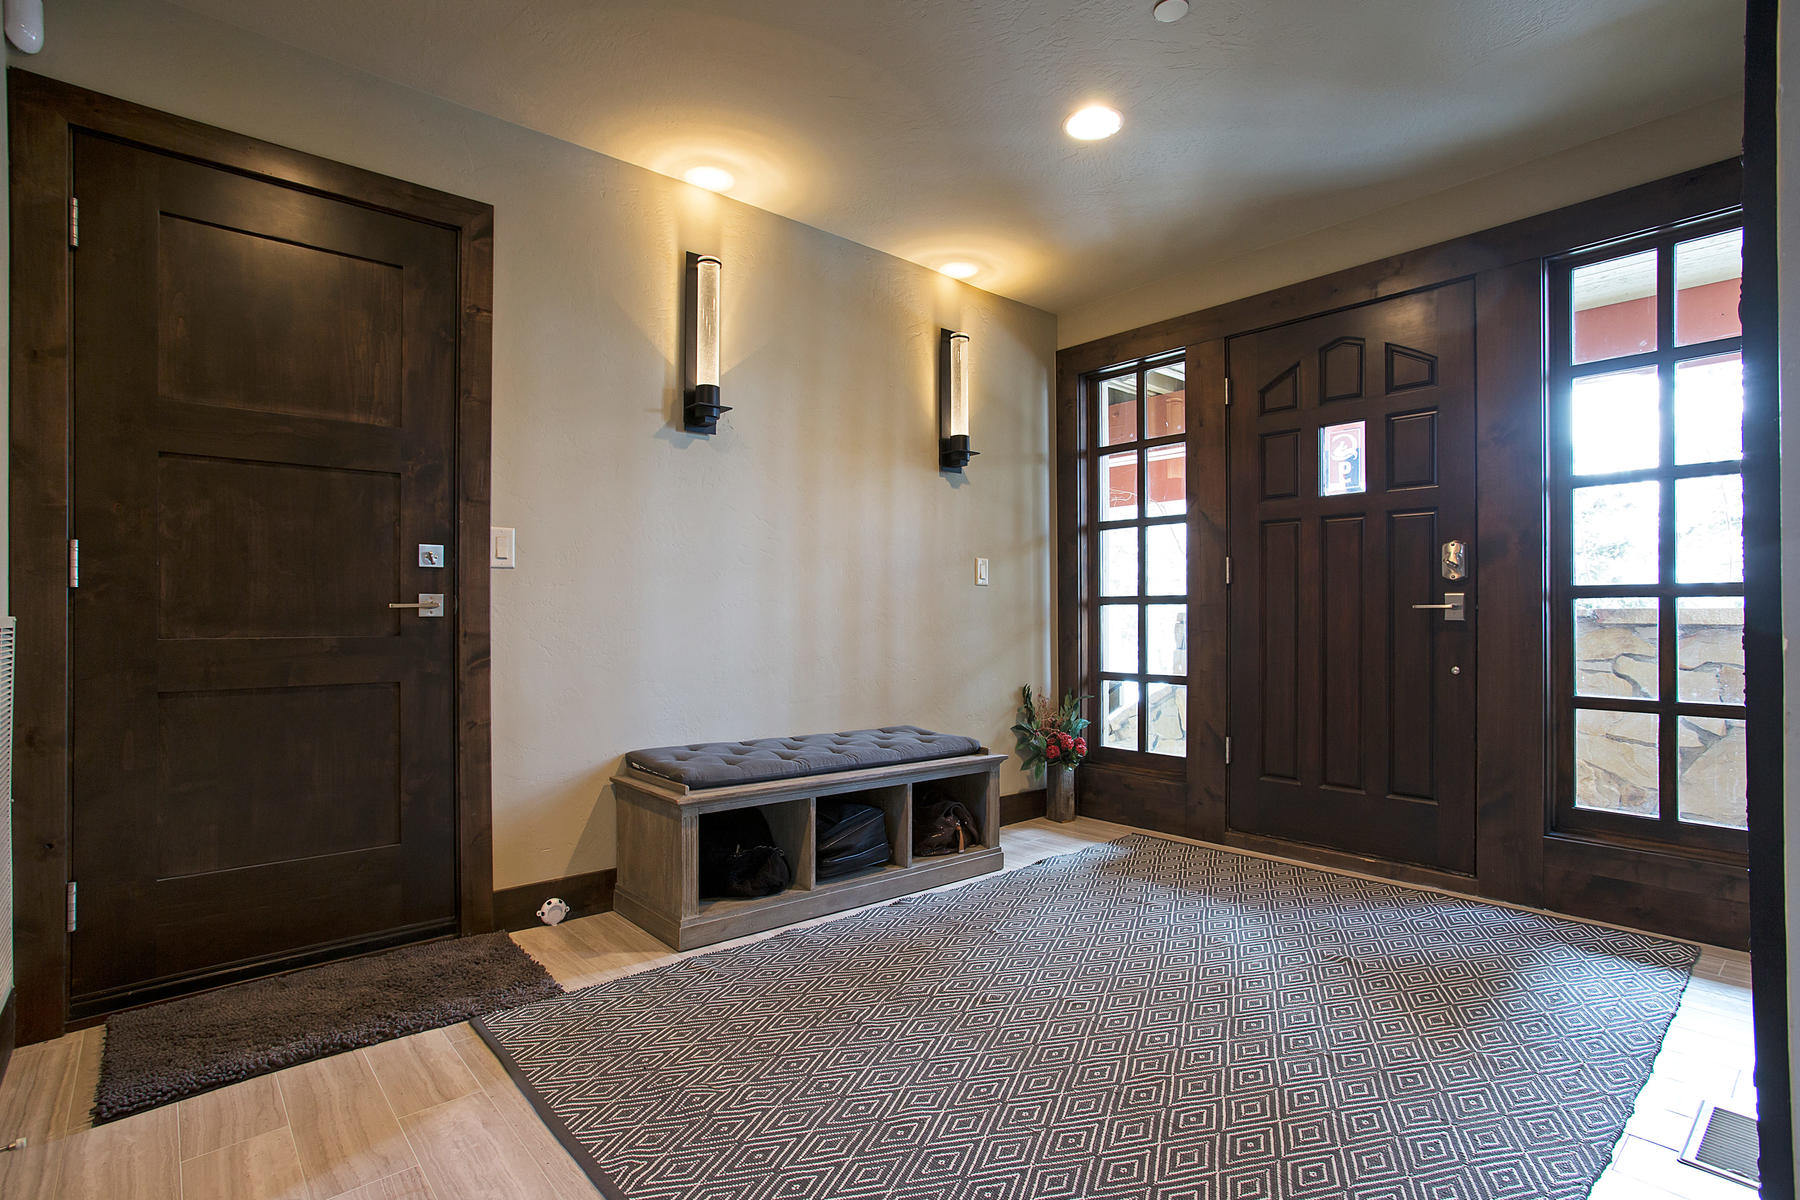 Additional photo for property listing at Stand Alone Townhouse In Silver Lake 8120 Cache Dr #9 Park City, Utah 84060 United States